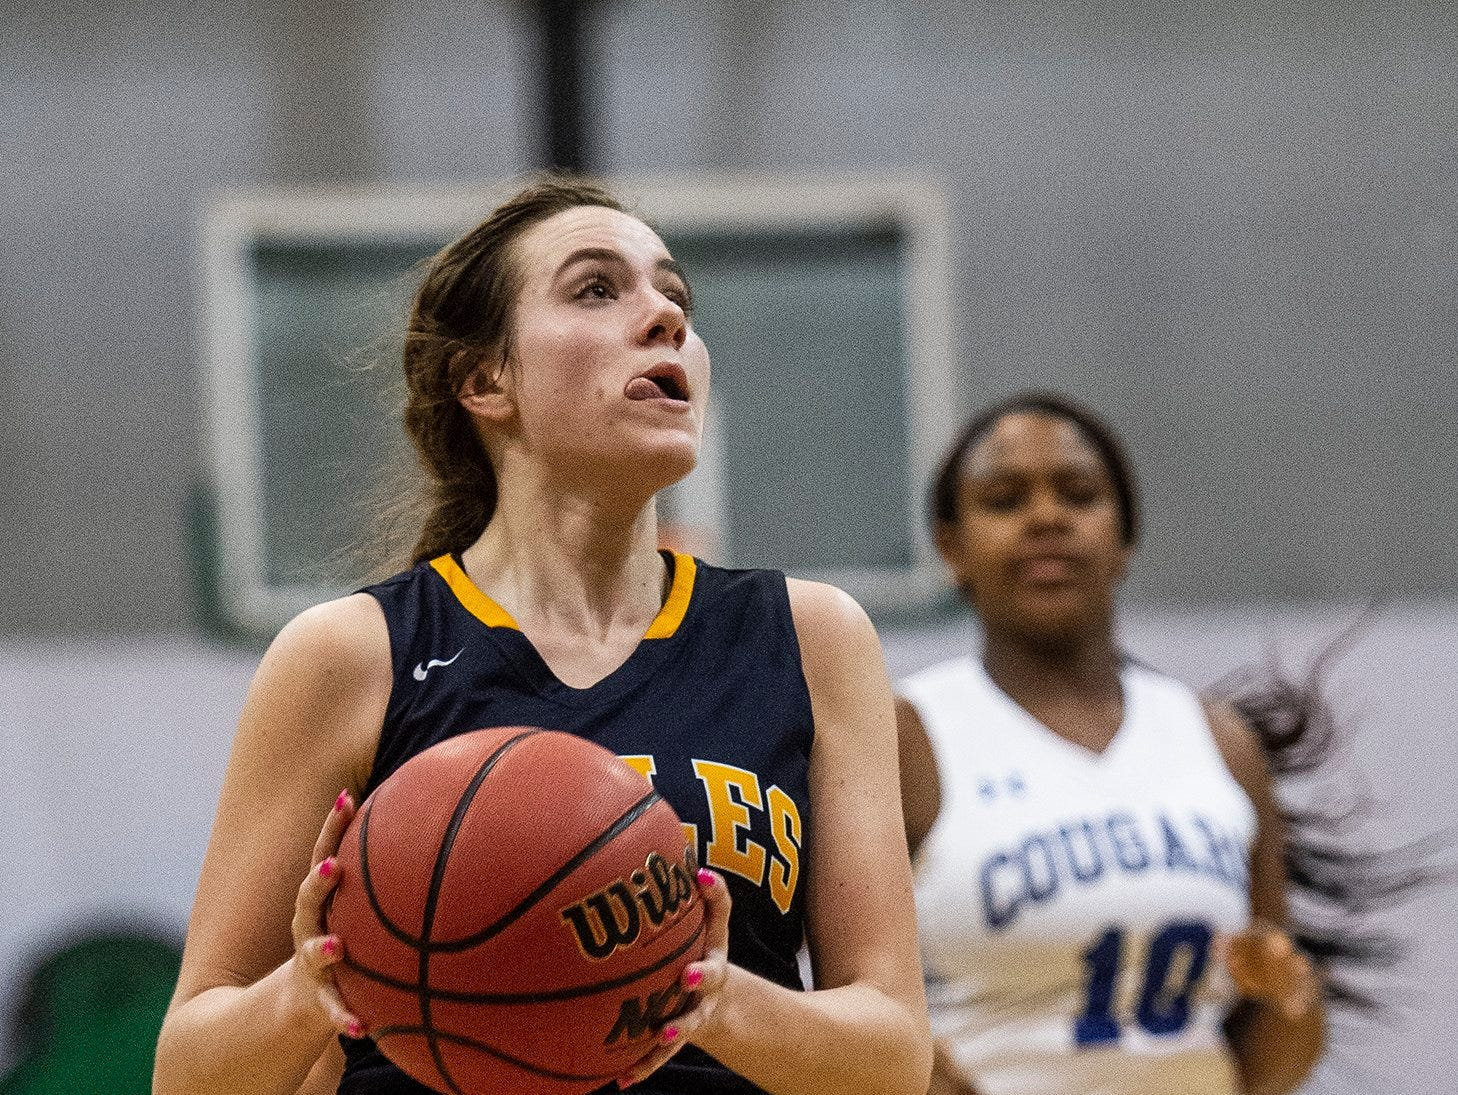 Naples High School's Sydney Zerbe goes up for a shot during the Class 7A-District 12 Championship against Barron Collier High School in Naples, Fla., on Friday, Feb. 8, 2019.